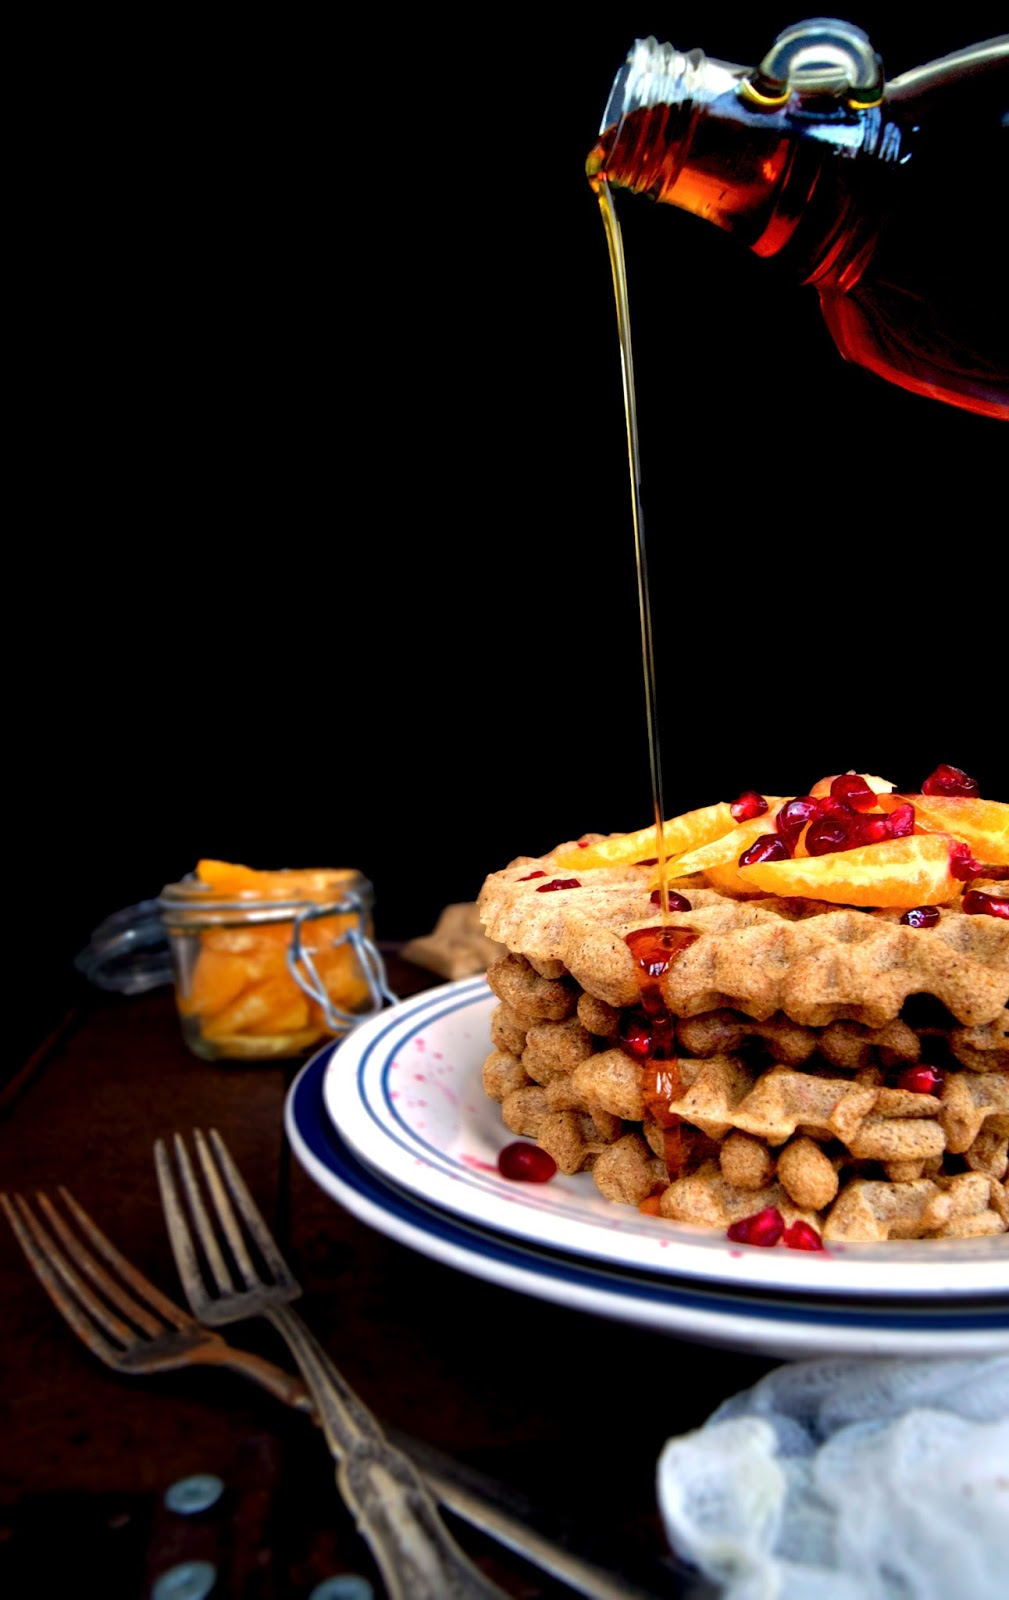 These whole wheat and vegan overnight waffles are made with yeast instead of baking powder, then left to rise overnight so you wake up ready to make waffles. The texture is a bit chewier, with a slightly stronger flavour, and flavoured with orange.